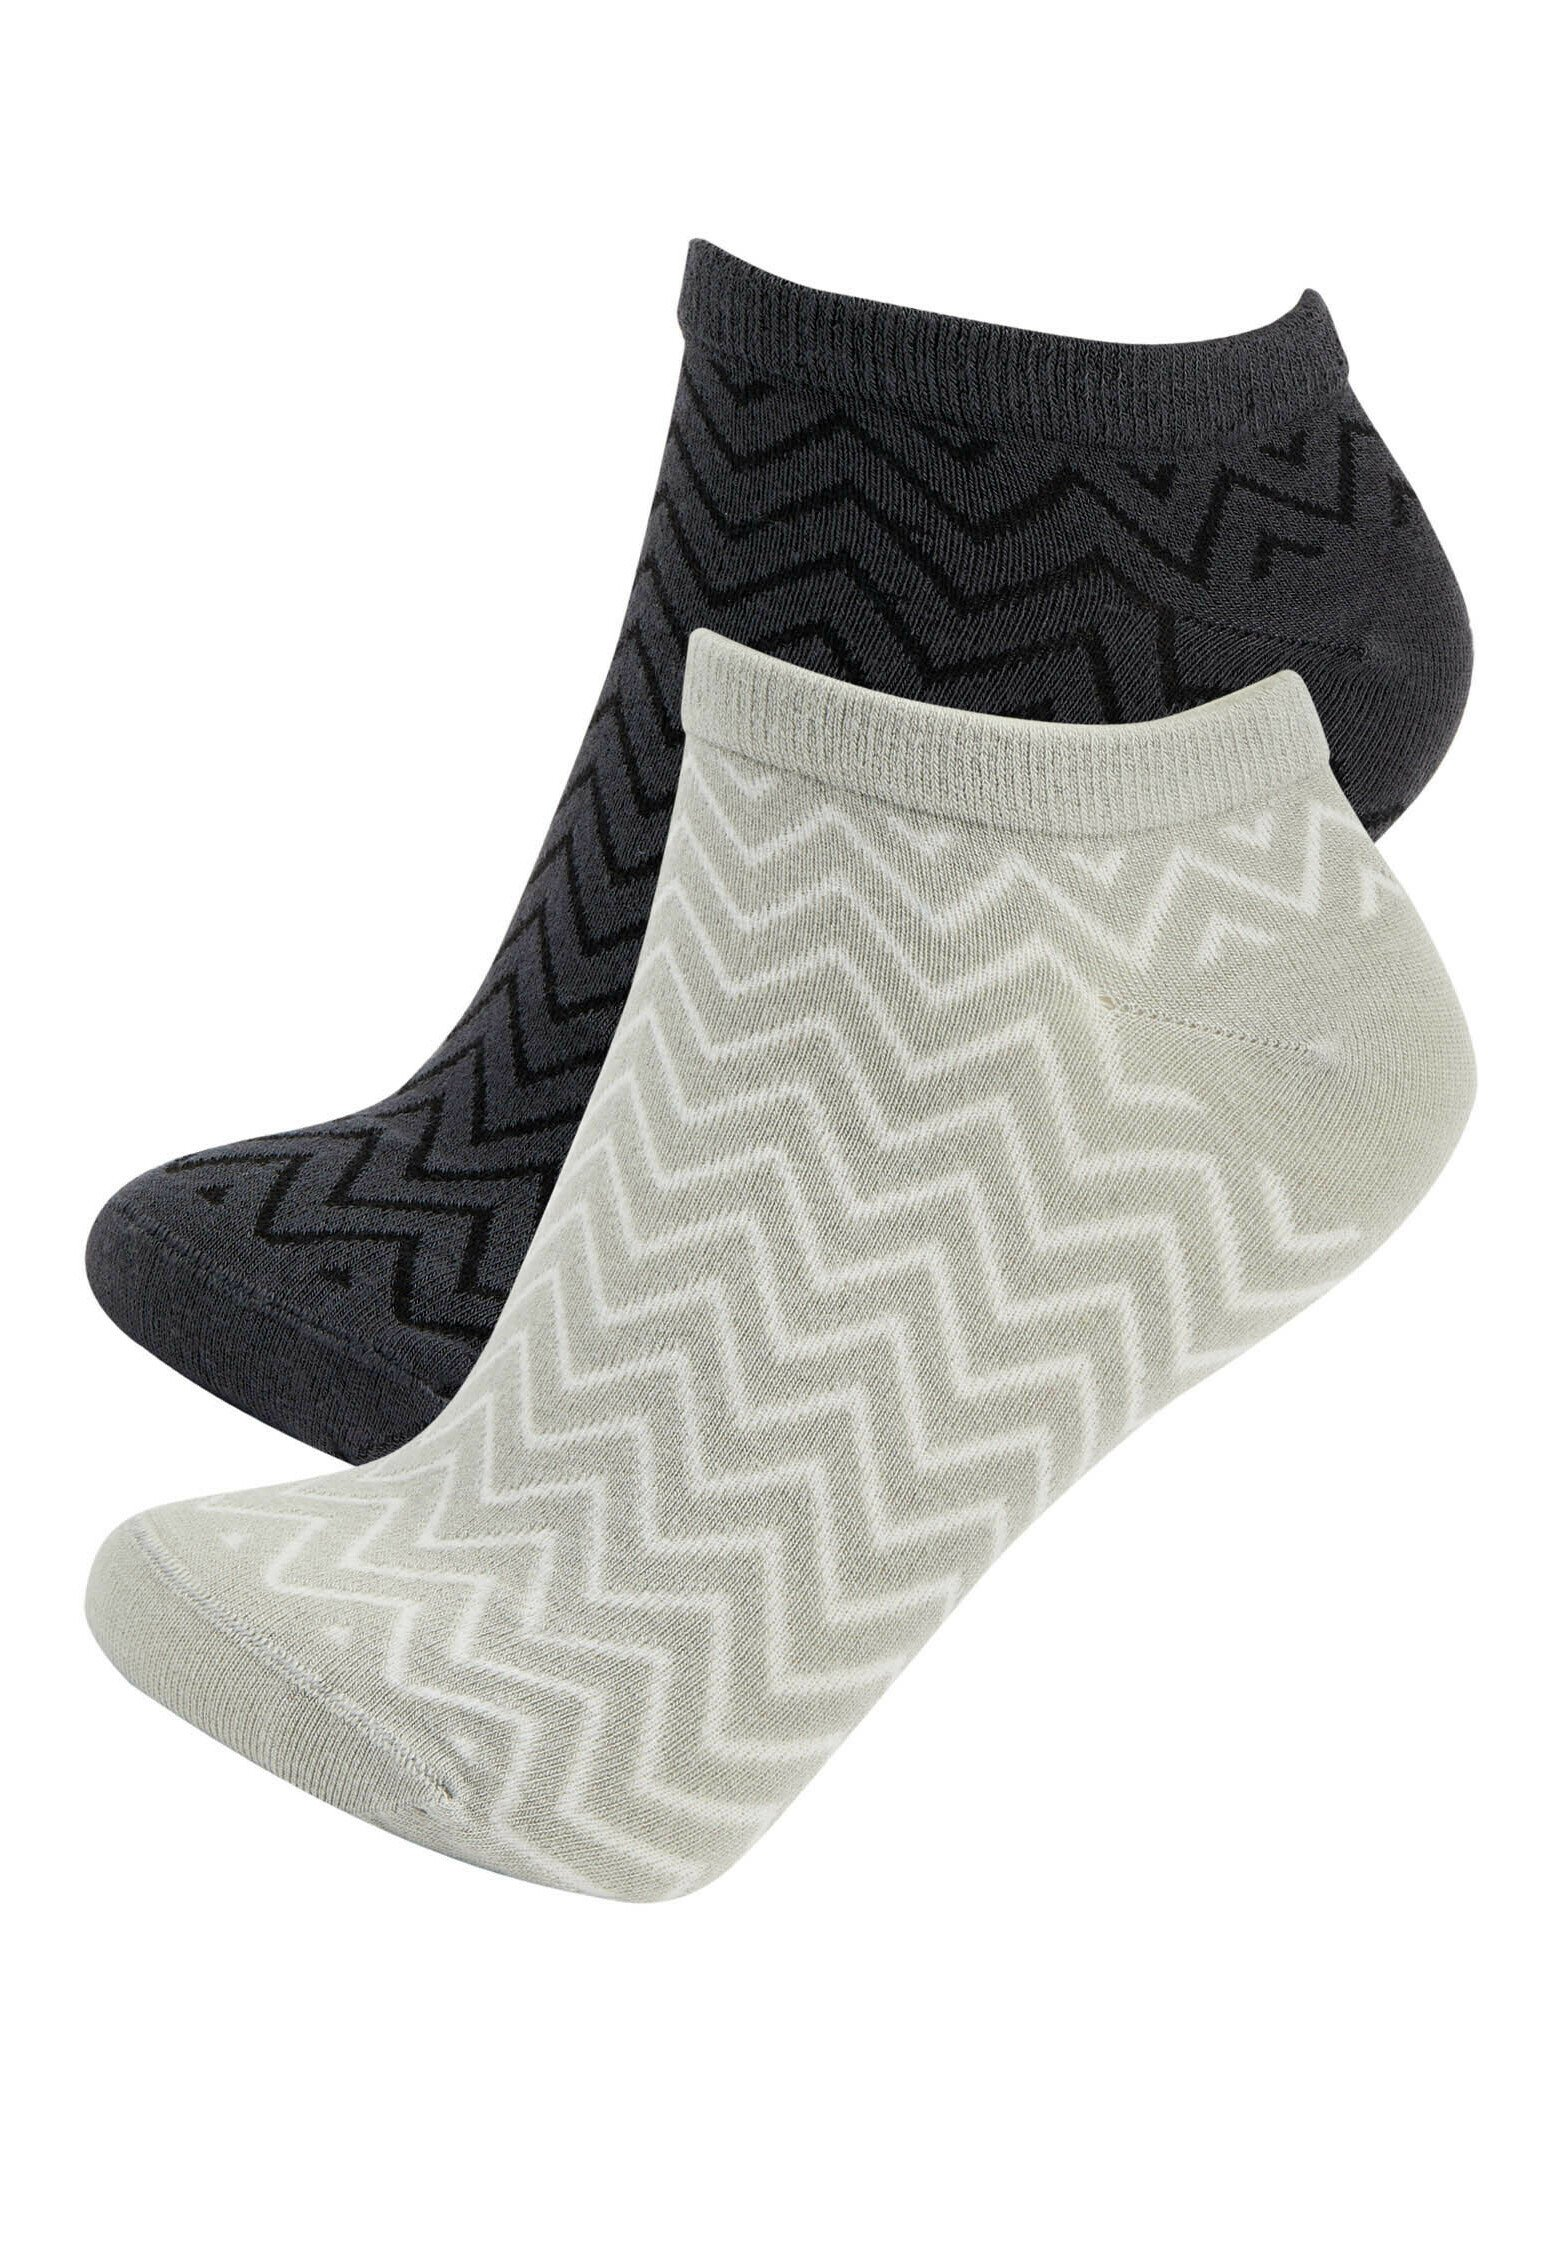 Hombre 2 PACK - Calcetines